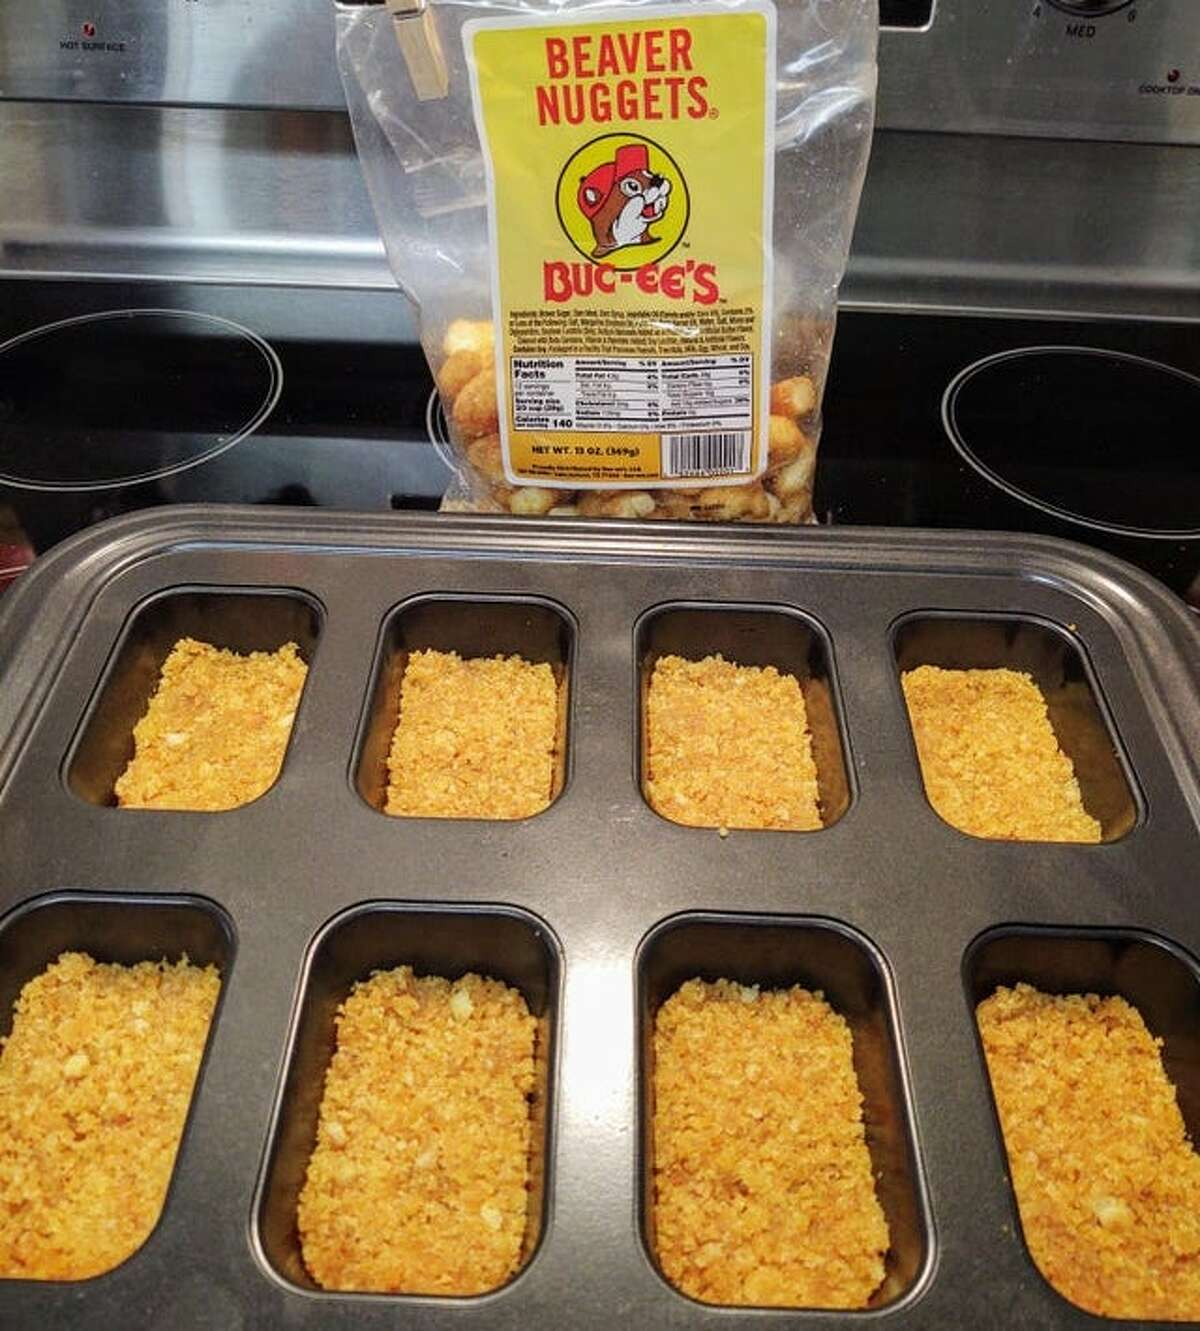 Would you eat a dessert made with Buc-ee's Beaver Nuggets?